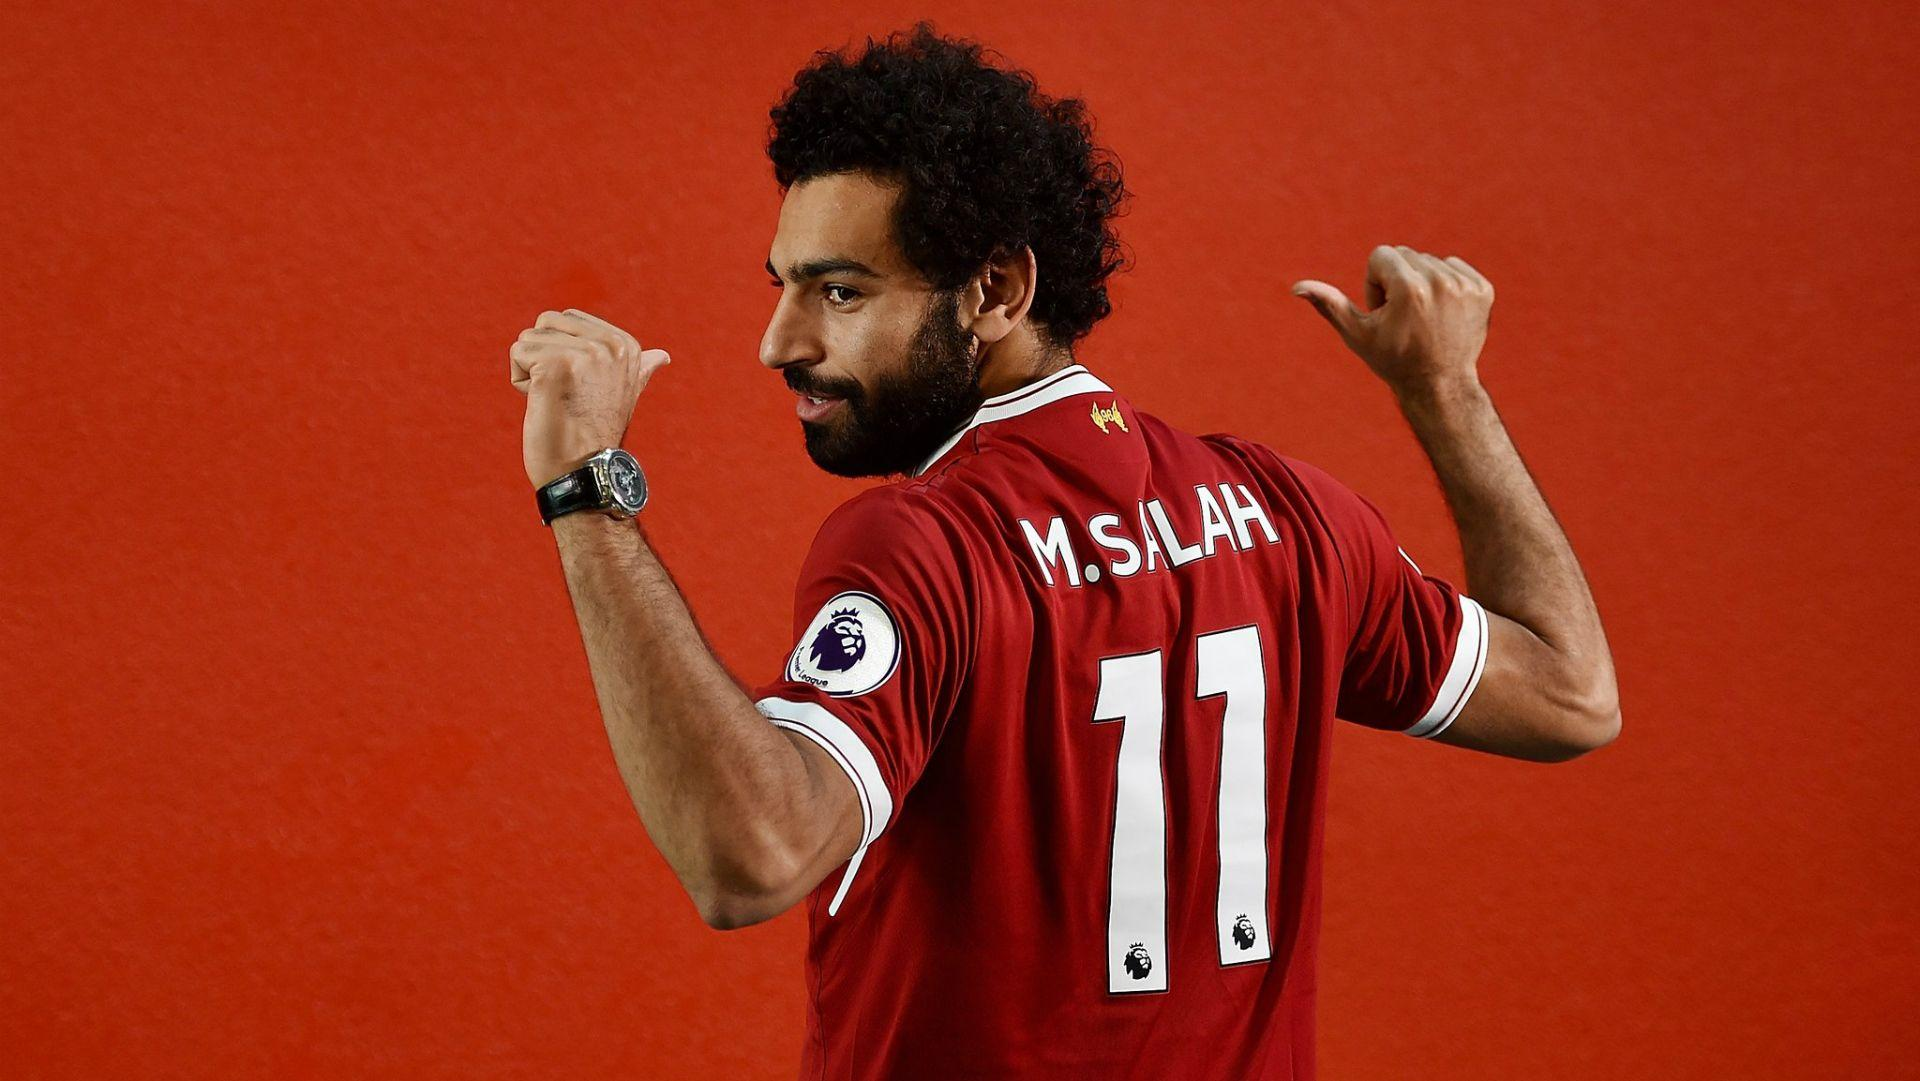 Mo Salah Wallpapers